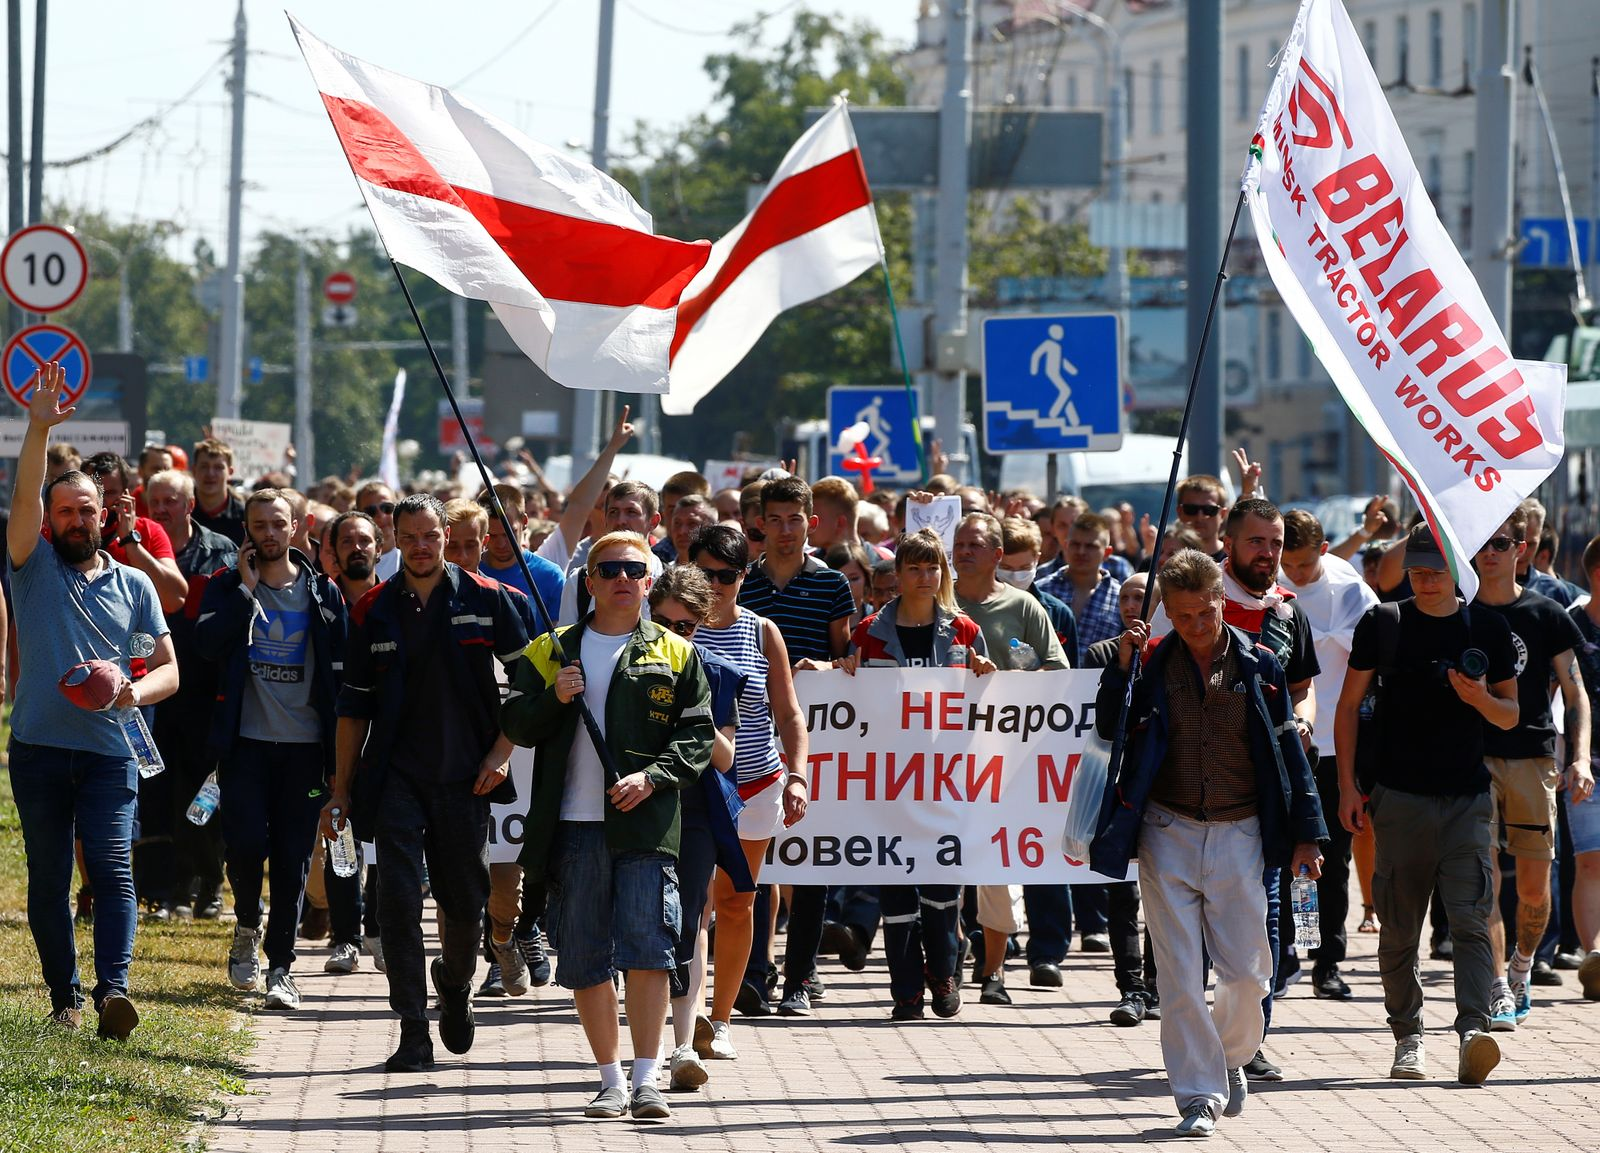 People protest against presidential election results in Minsk